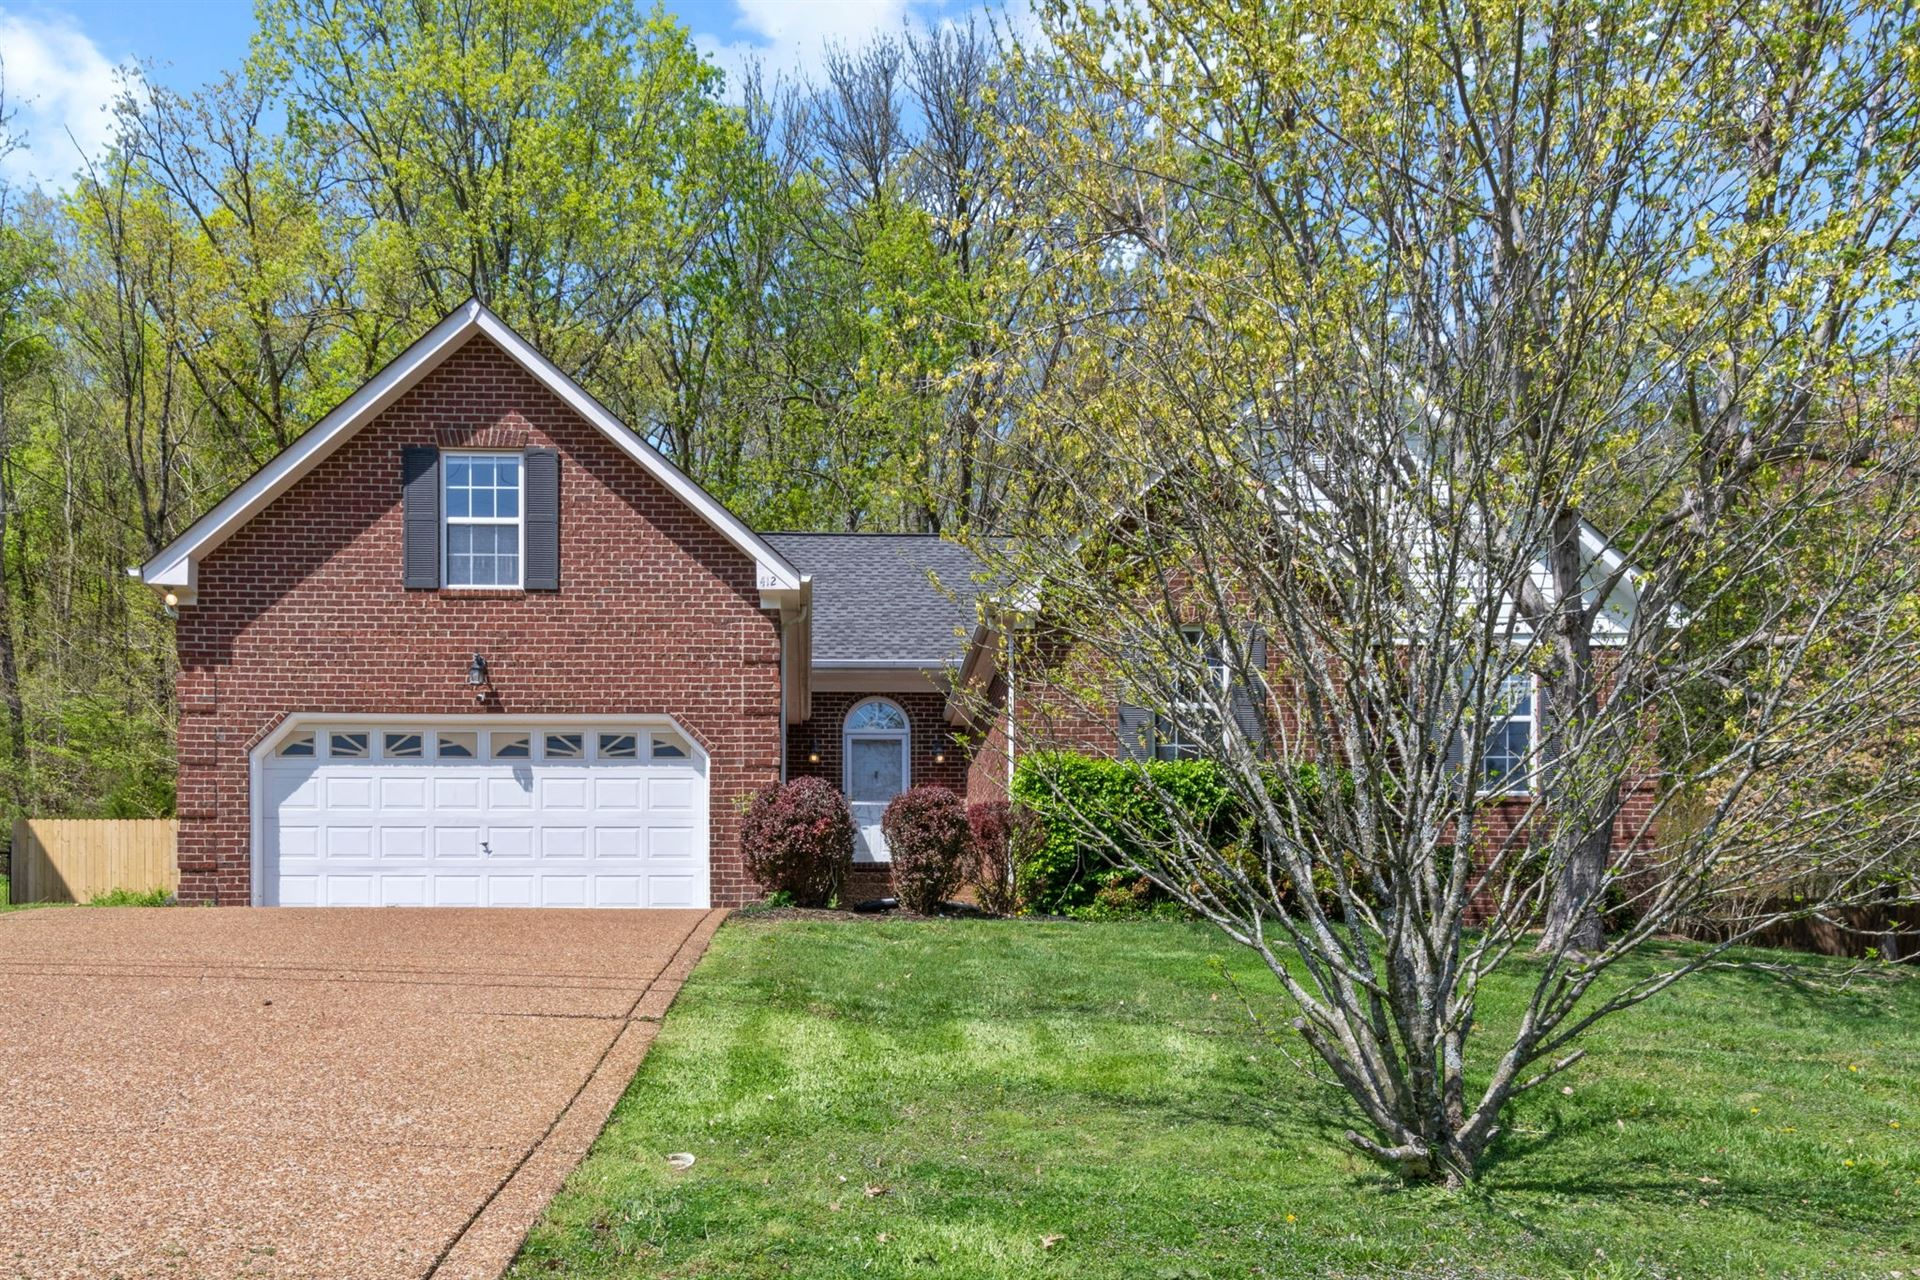 412 Spring Hill Dr, Smyrna, TN 37167 - MLS#: 2243592